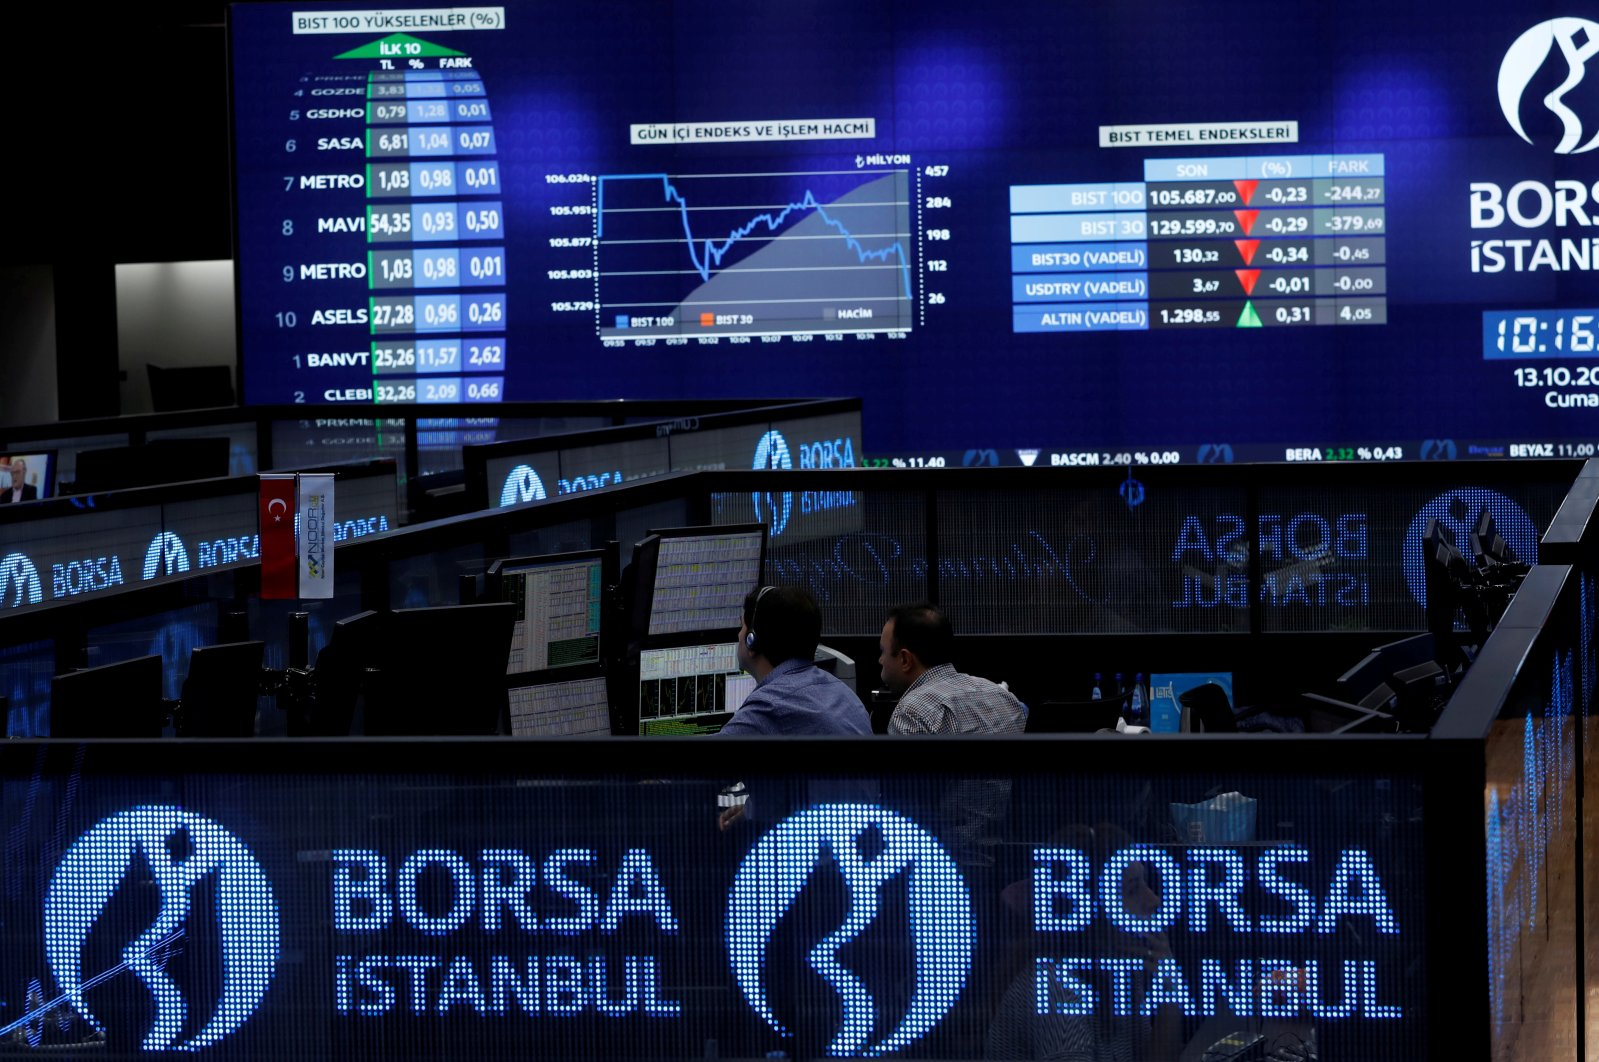 Traders work at their desks on the floor of Borsa Istanbul in Istanbul, Turkey, Oct. 13, 2017. (Reuters Photo)